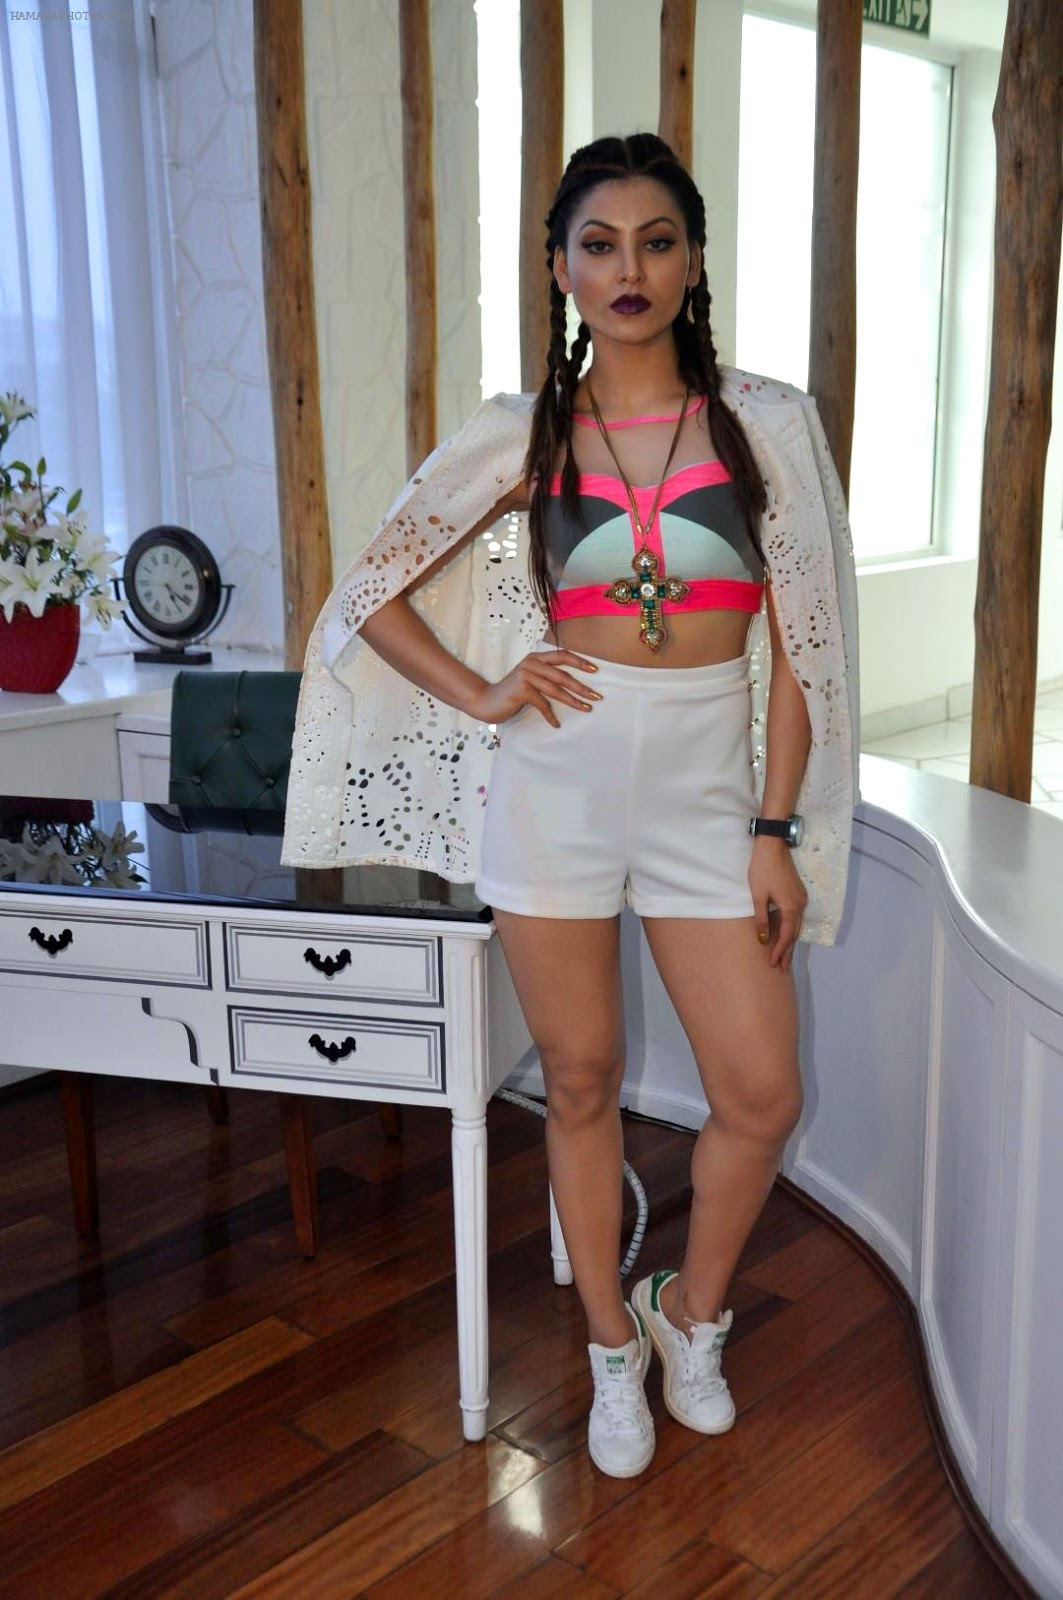 Urvashi Rautella in Sports bra and Shorts at Exhibit Magazine Cover apage launch